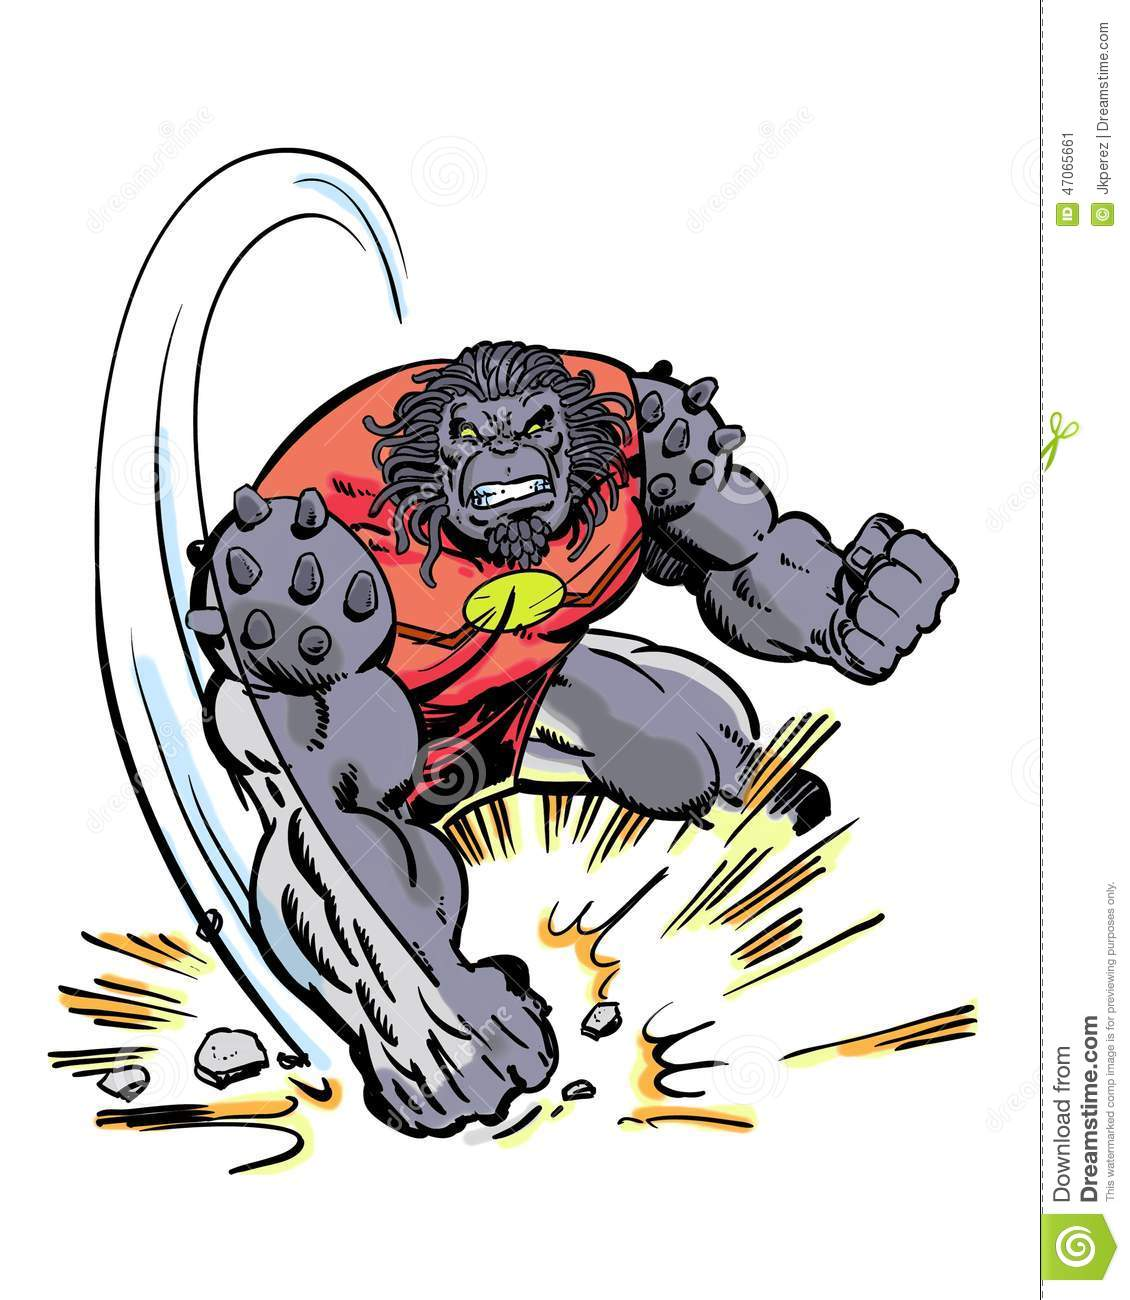 Comic Book Character Grock The Alien Brute Pounding The